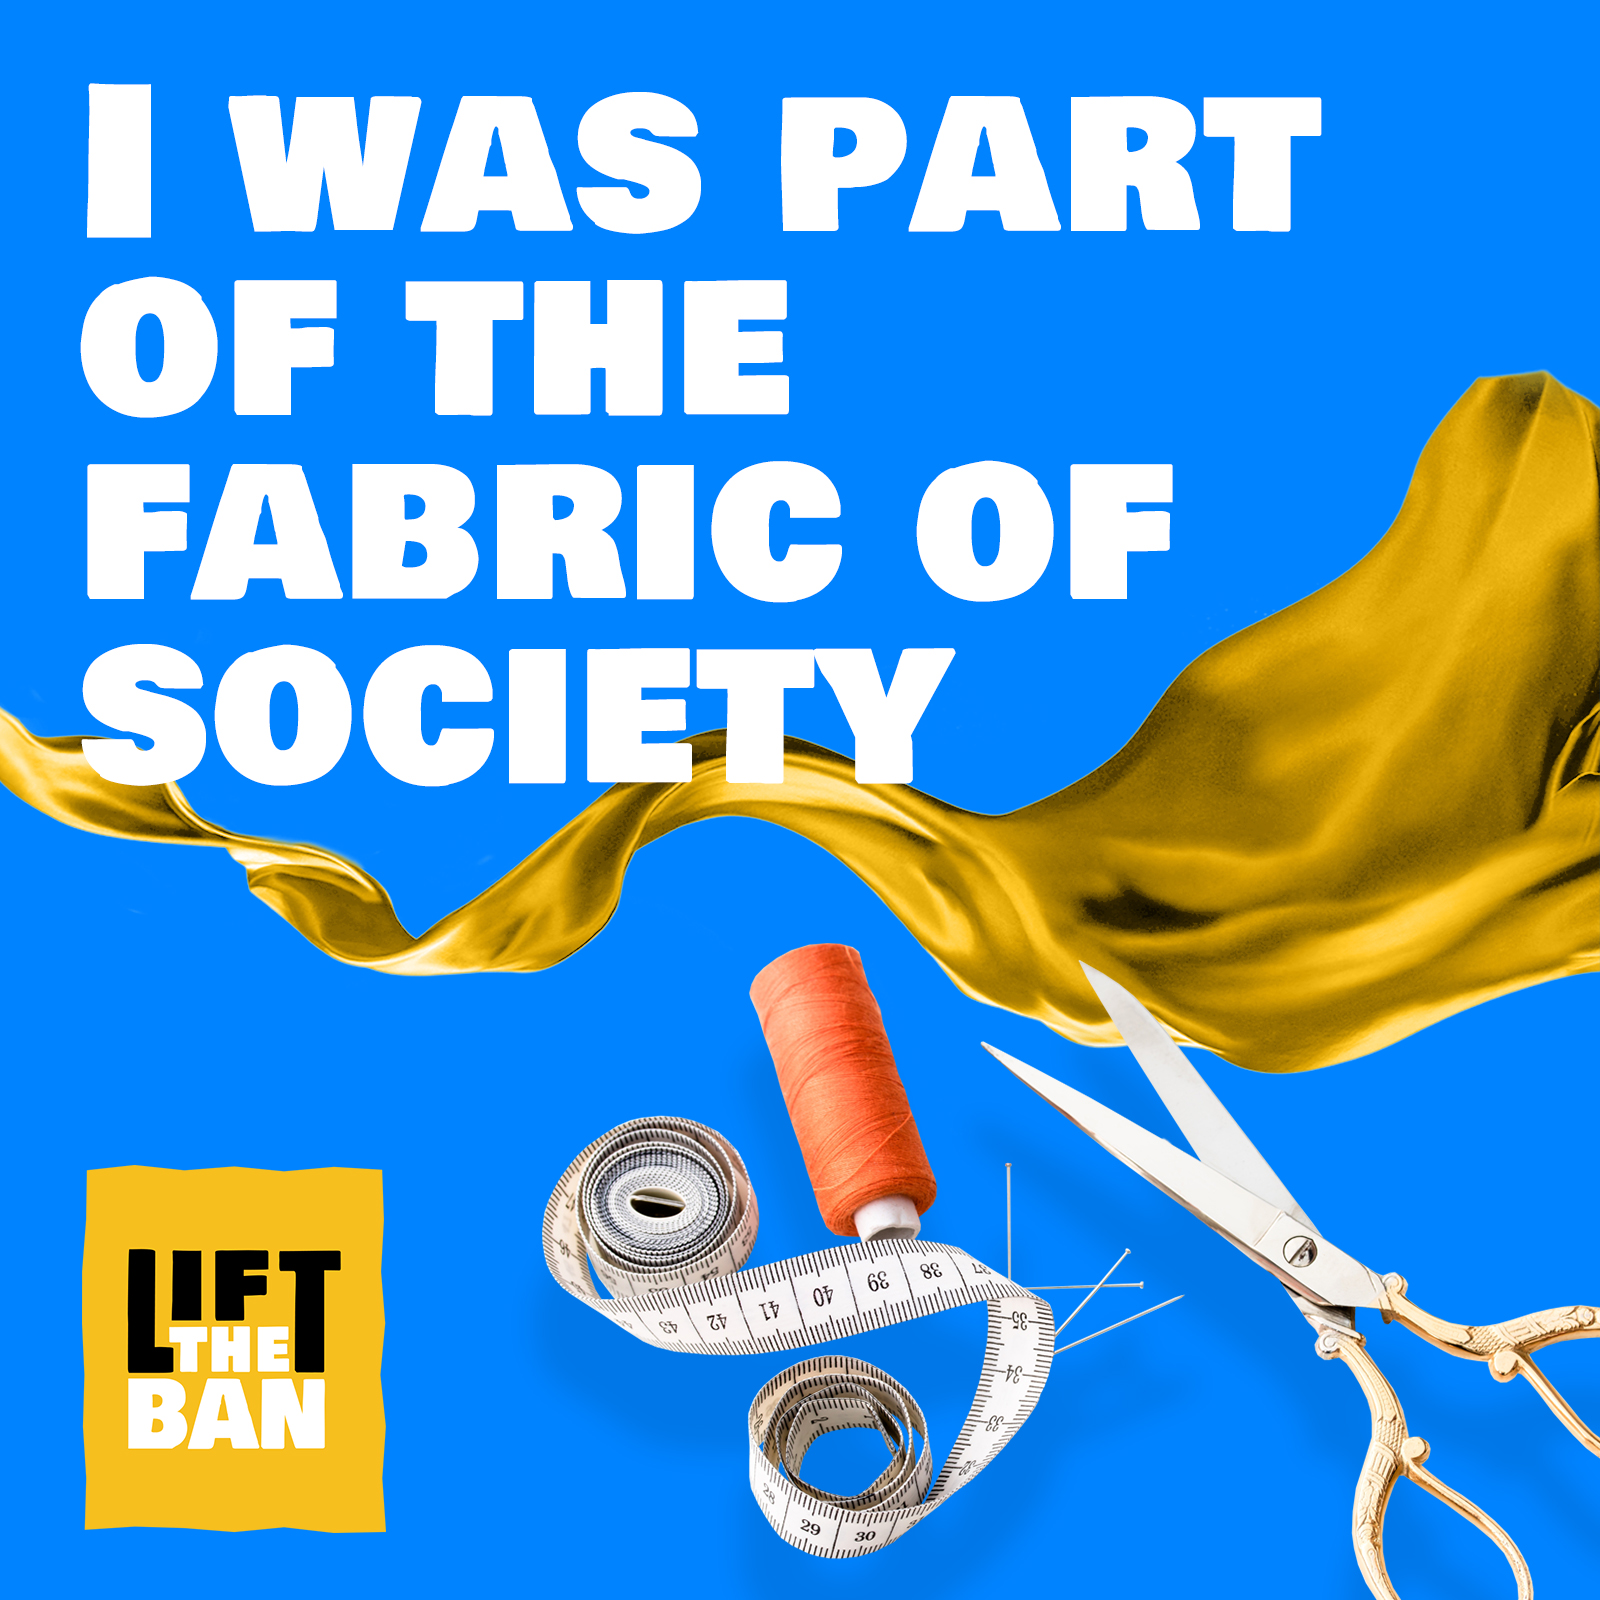 lift_the_ban_identity_social_final_Tailor